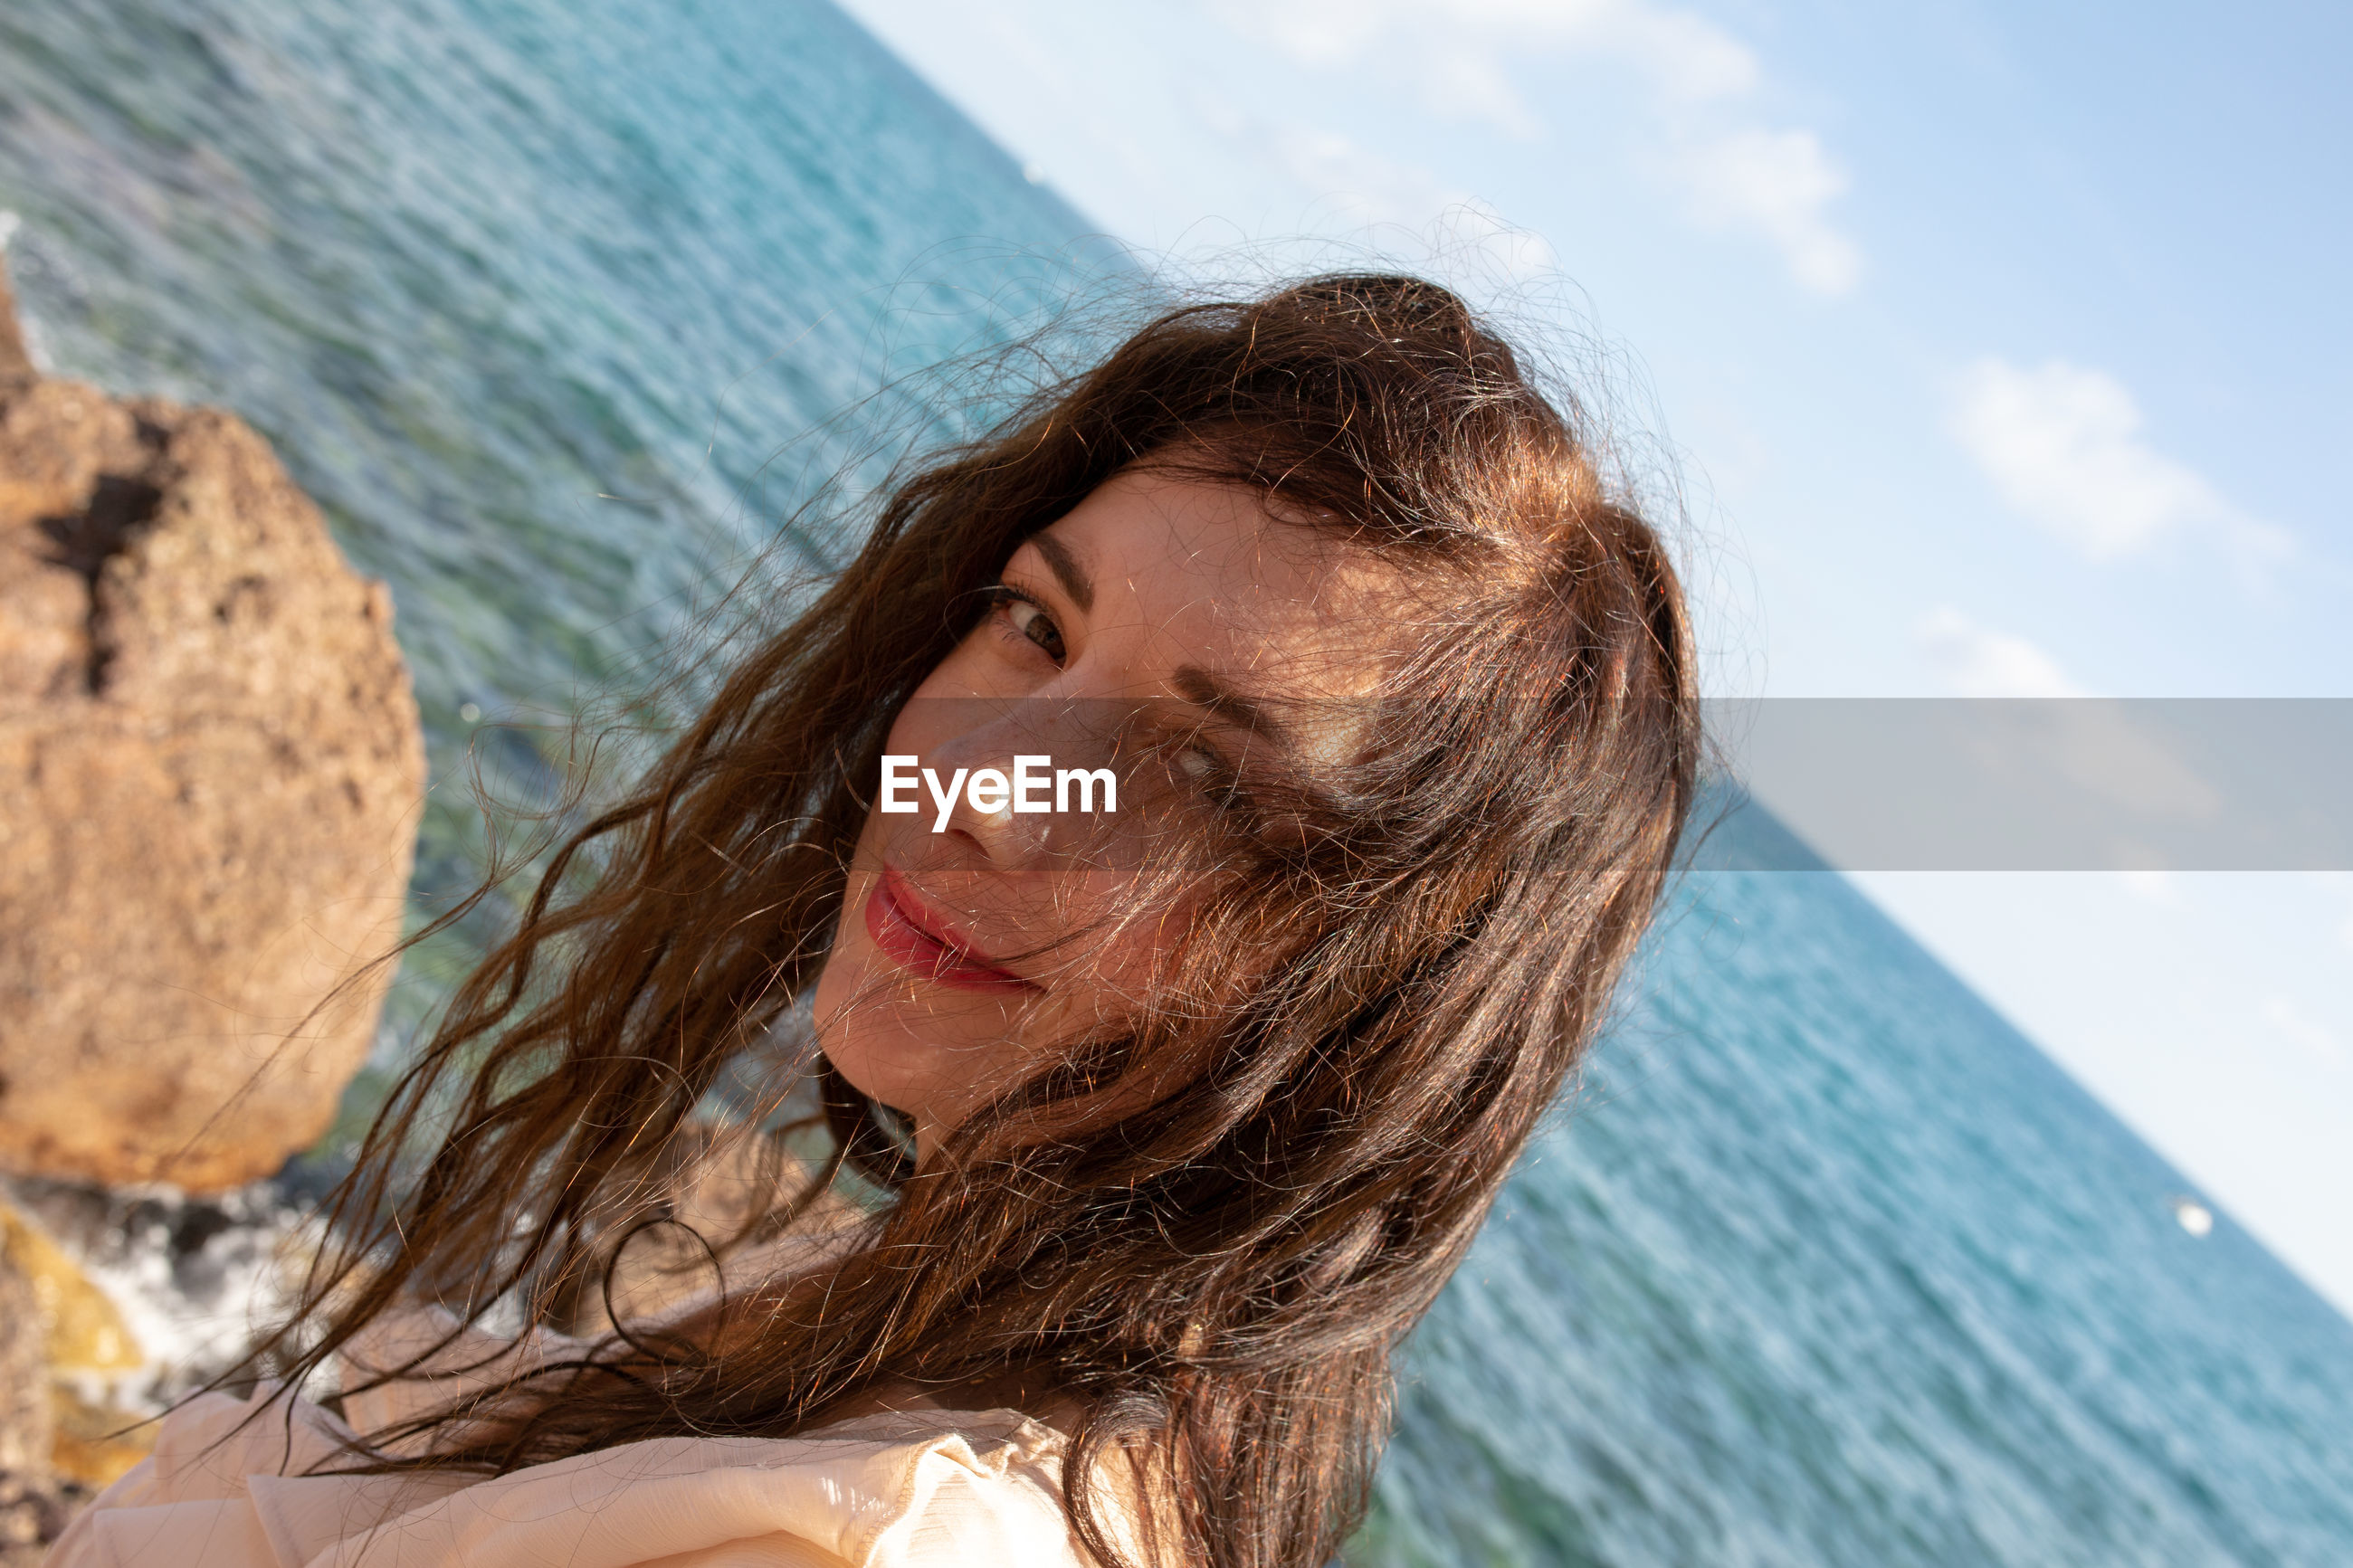 Close-up portrait of woman at beach against sky